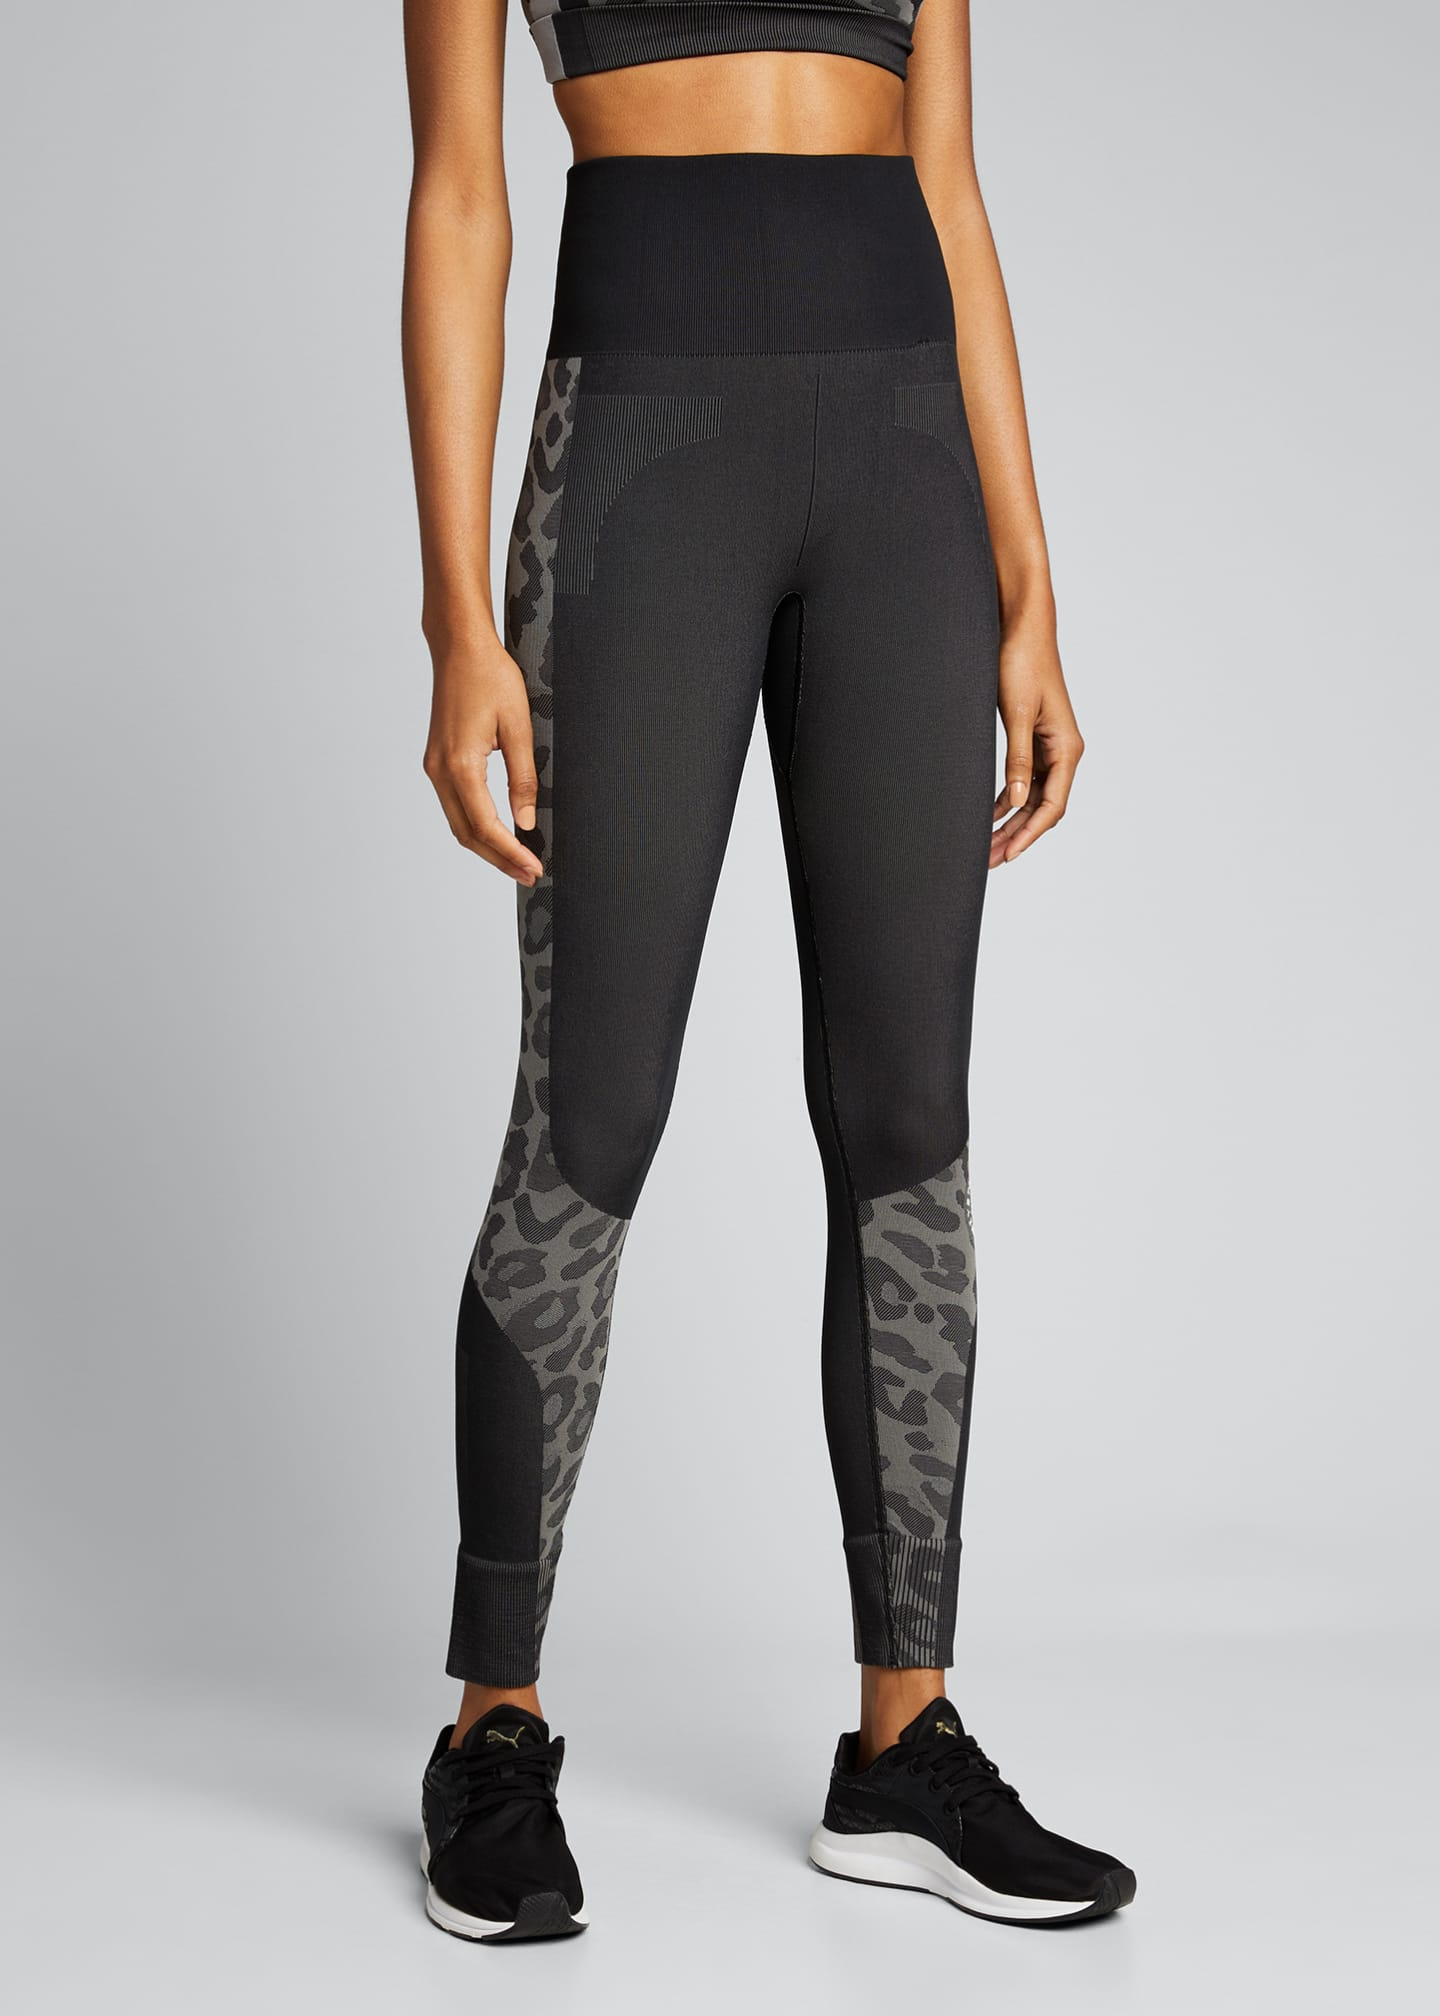 Image 3 of 5: Truepurpose Colorblock Animal Print Active Tights